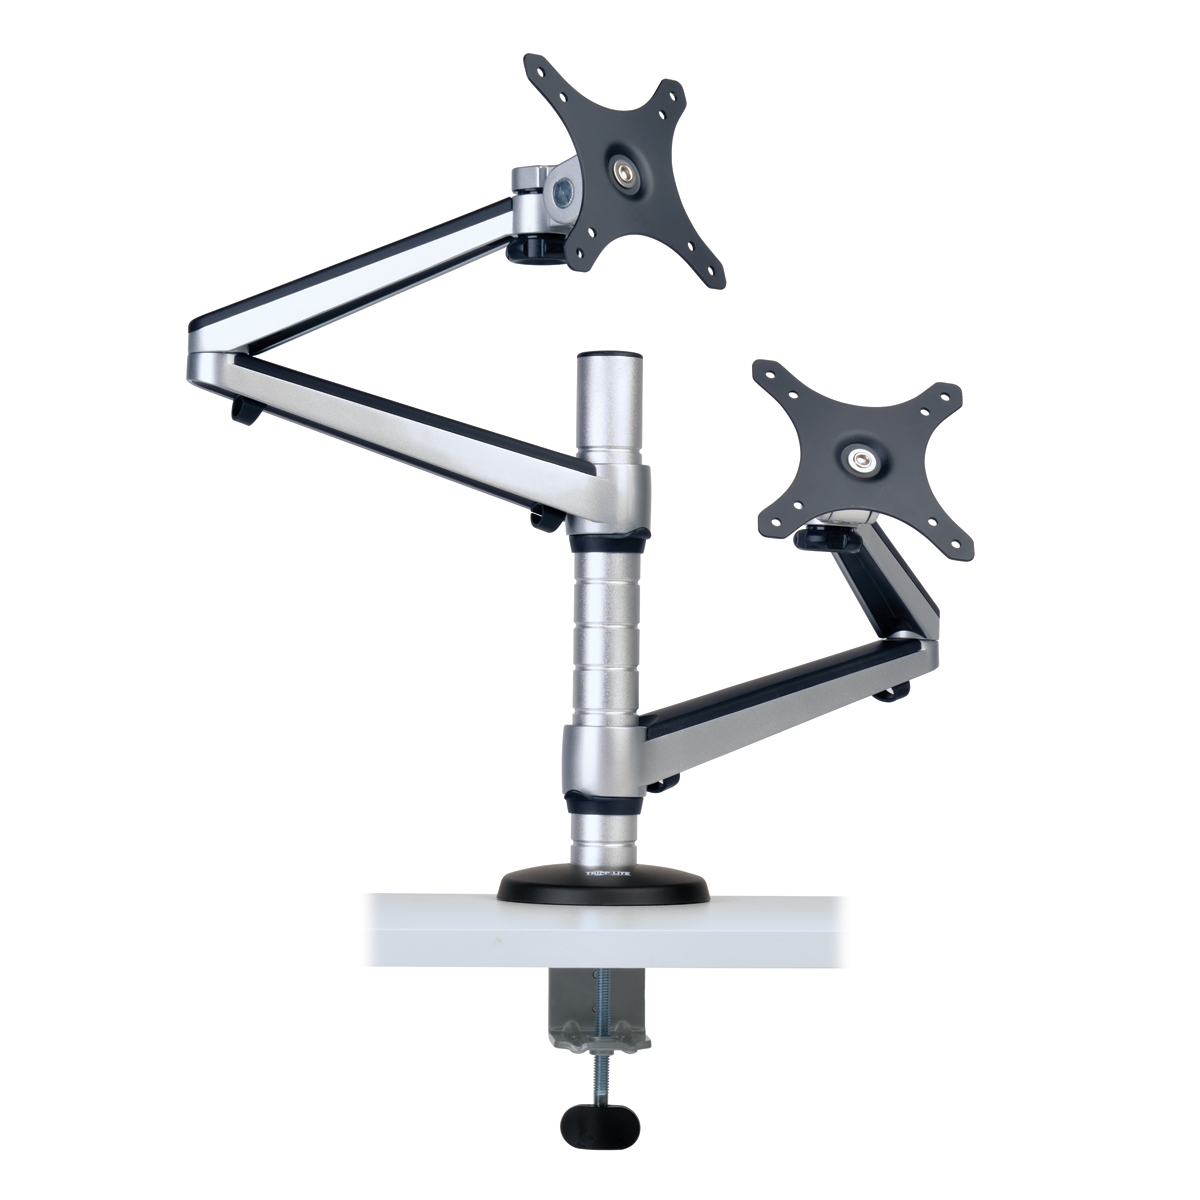 Tripp Lite Dual Display Desk Mount Monitor Arm Swivel to 27